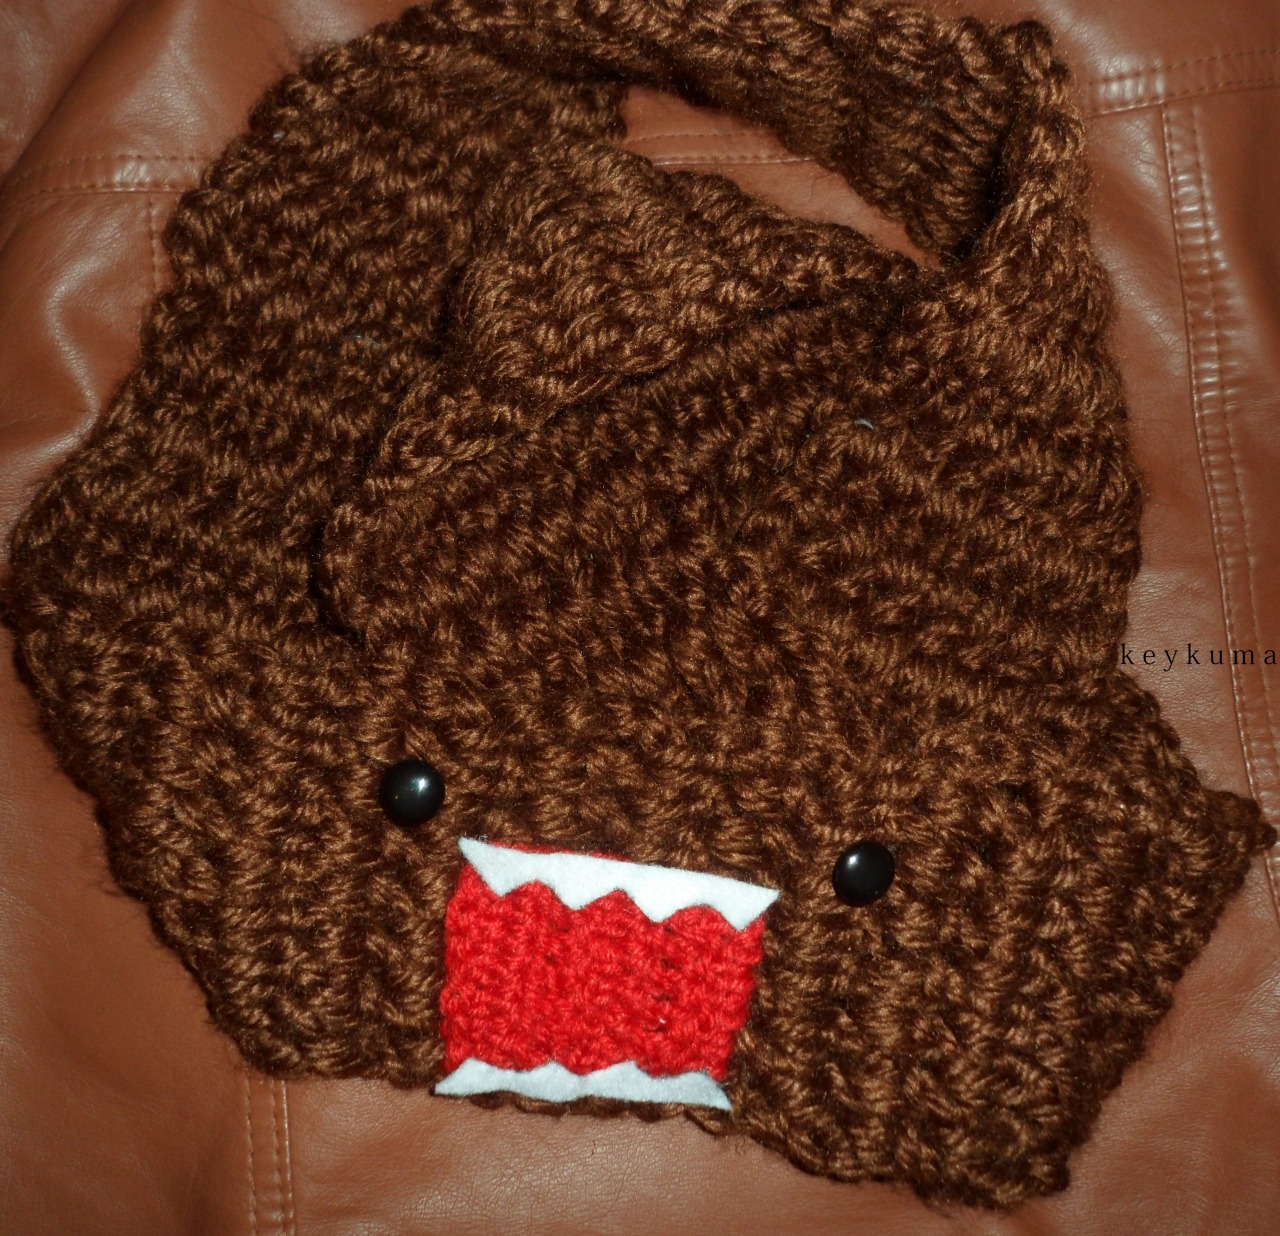 DOMO INFINITY SCARF!    Commission complete! I'm really content on how it turned out (⊙ヮ⊙).